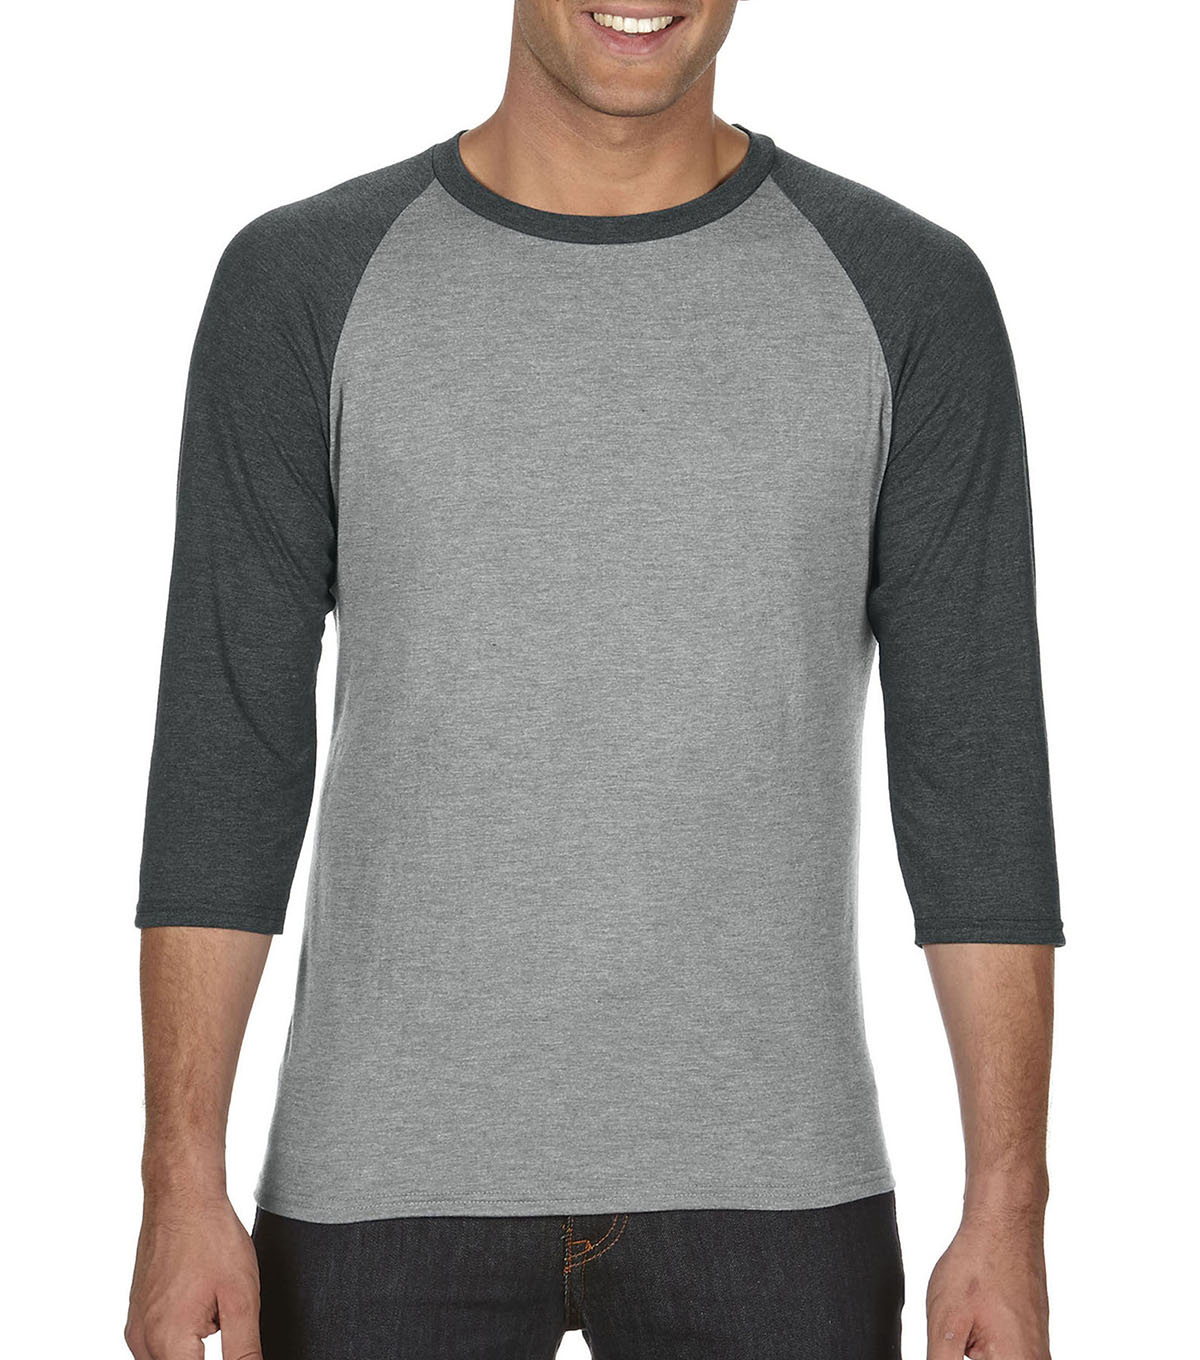 Anvil Extra Large Adult Raglan Shirt, Grey/dark Grey